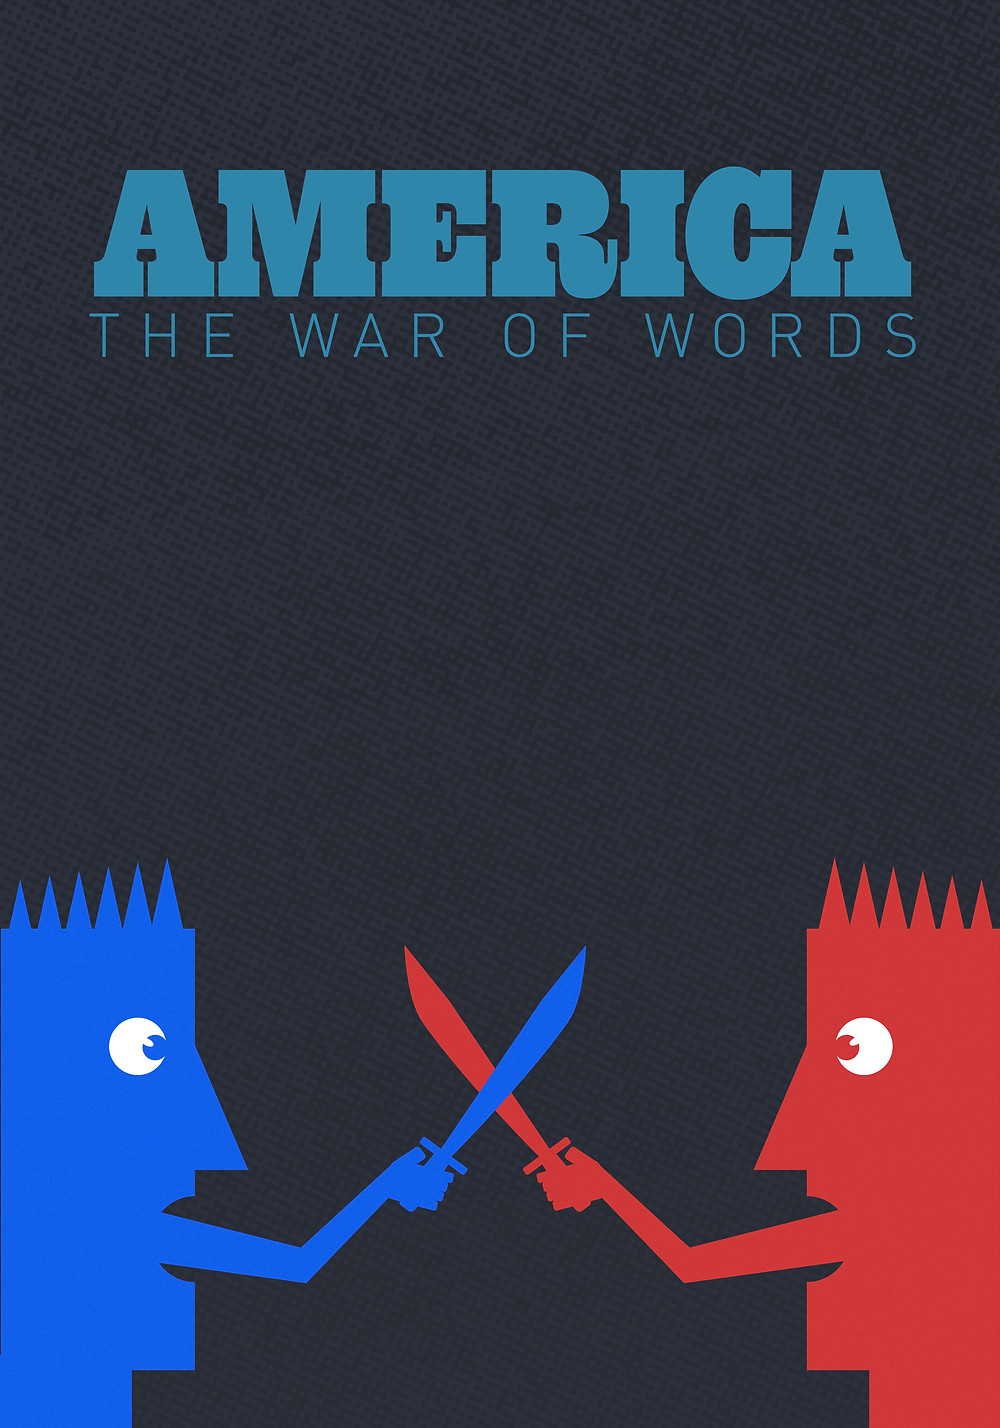 America the war of words.  This illustration represents the divide and ideological battle between the left and right wing political parties in America today.